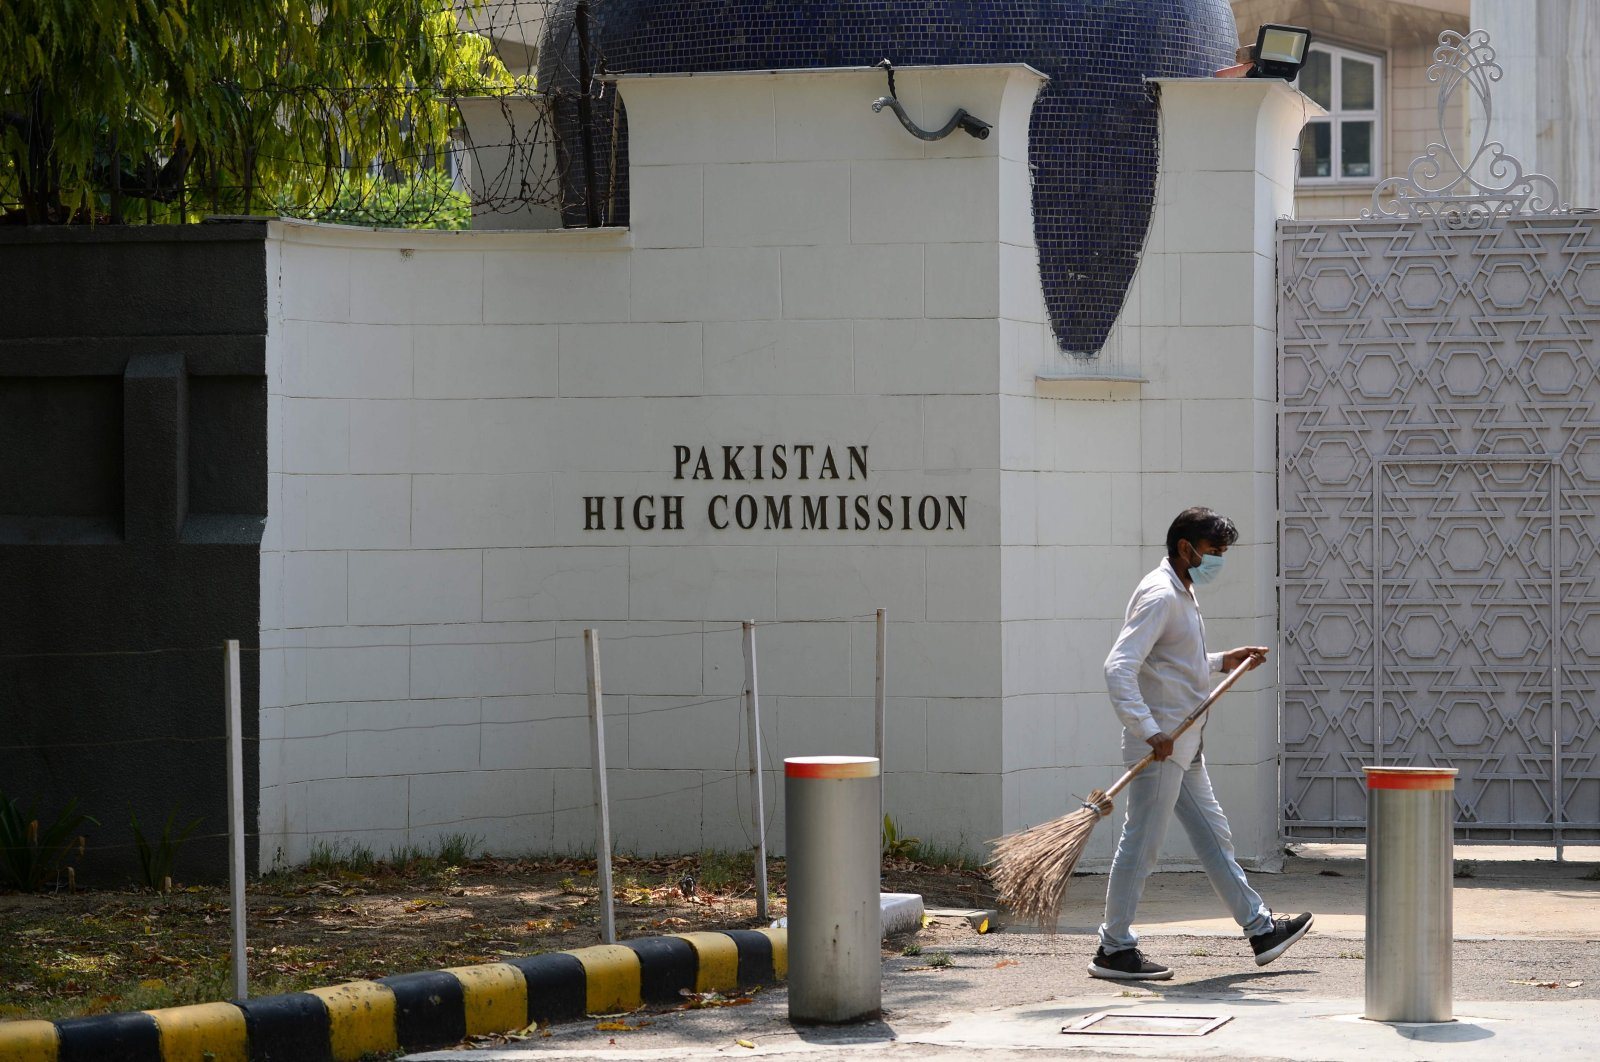 A man sweeps in front of the main gate of the Pakistan High Commission, New Delhi, June 1, 2020. (AFP Photo)